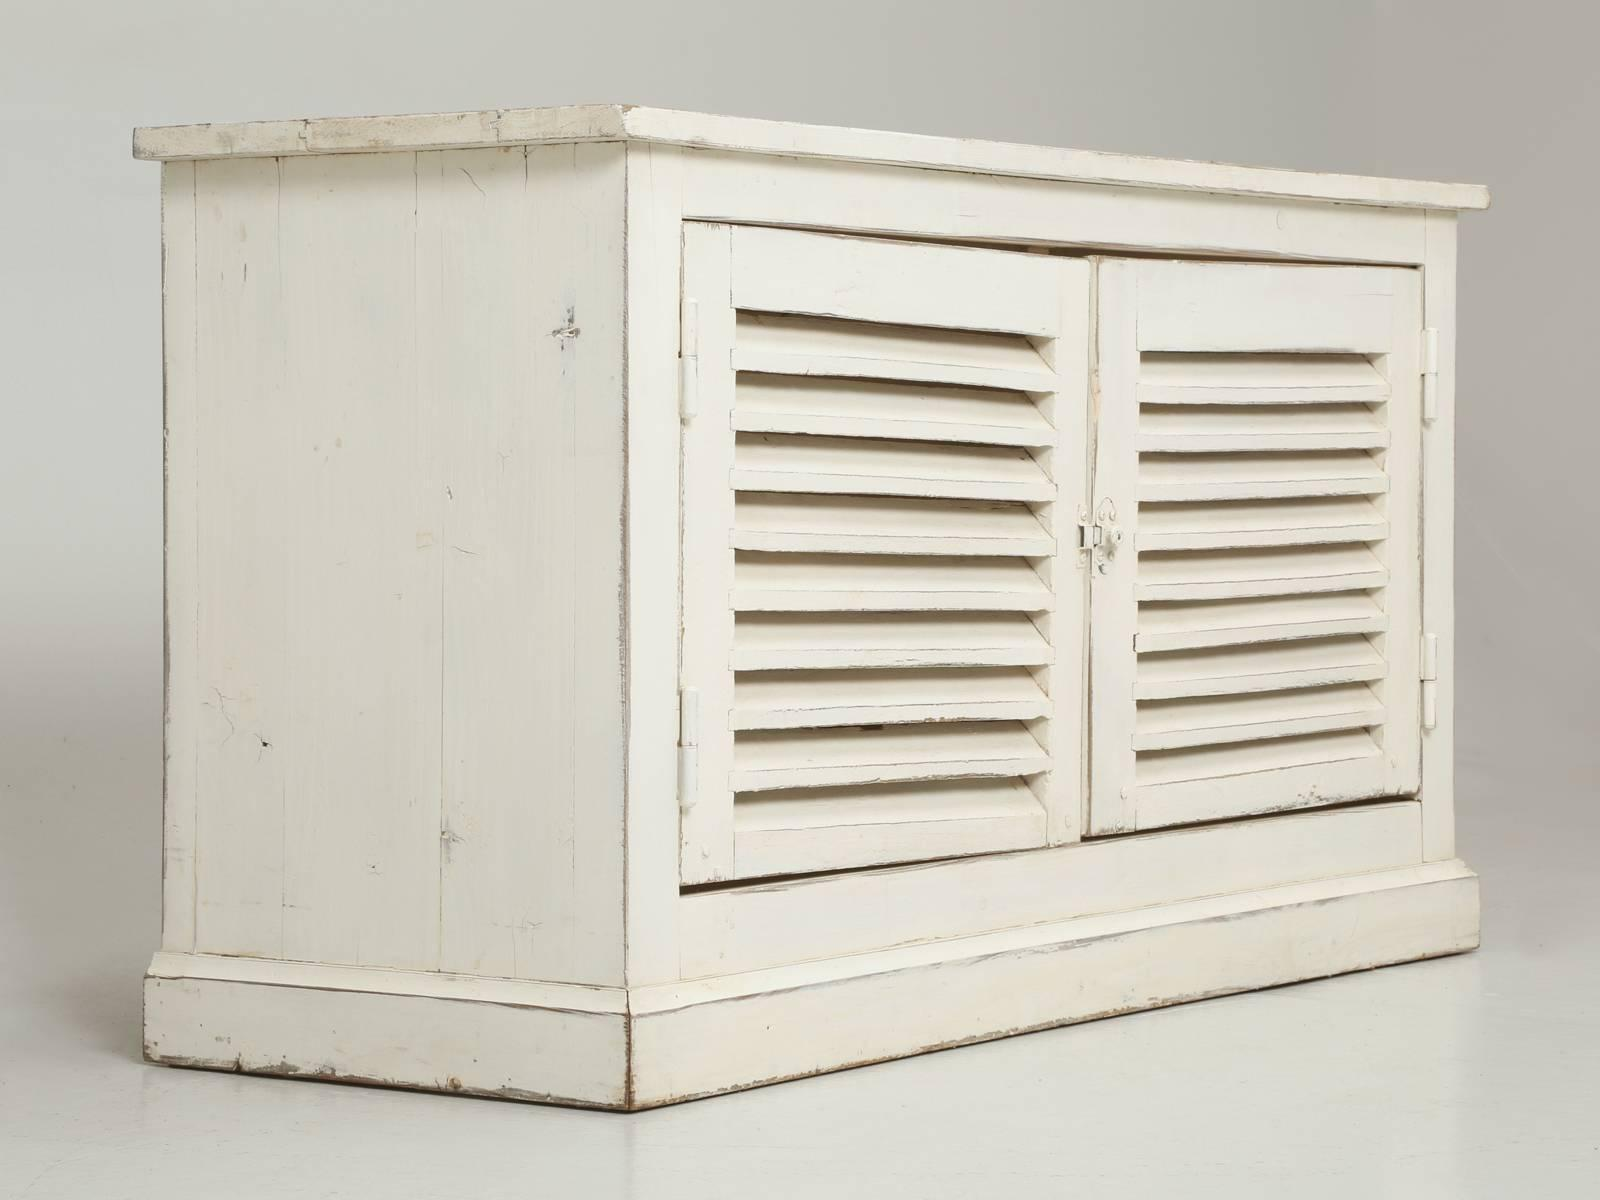 Superieur Country French Louvered Cabinet Or Low Buffet For Sale   Image 10 Of 10